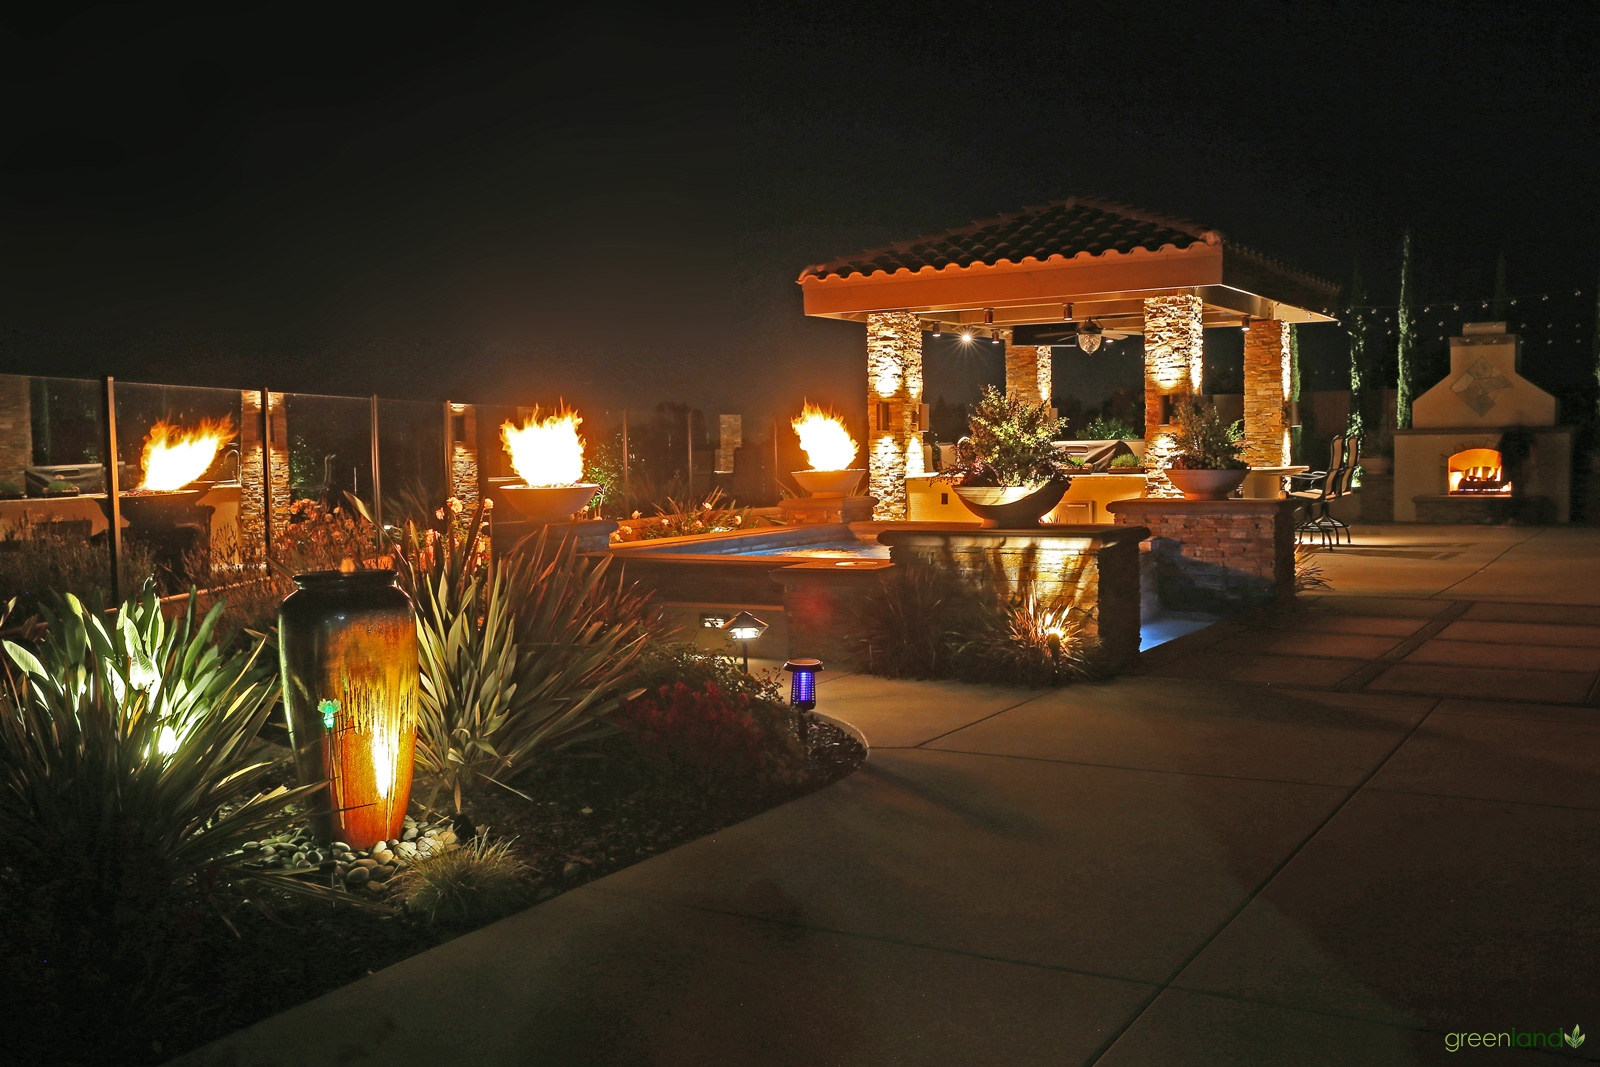 Spa and Outside Kitchen - Night